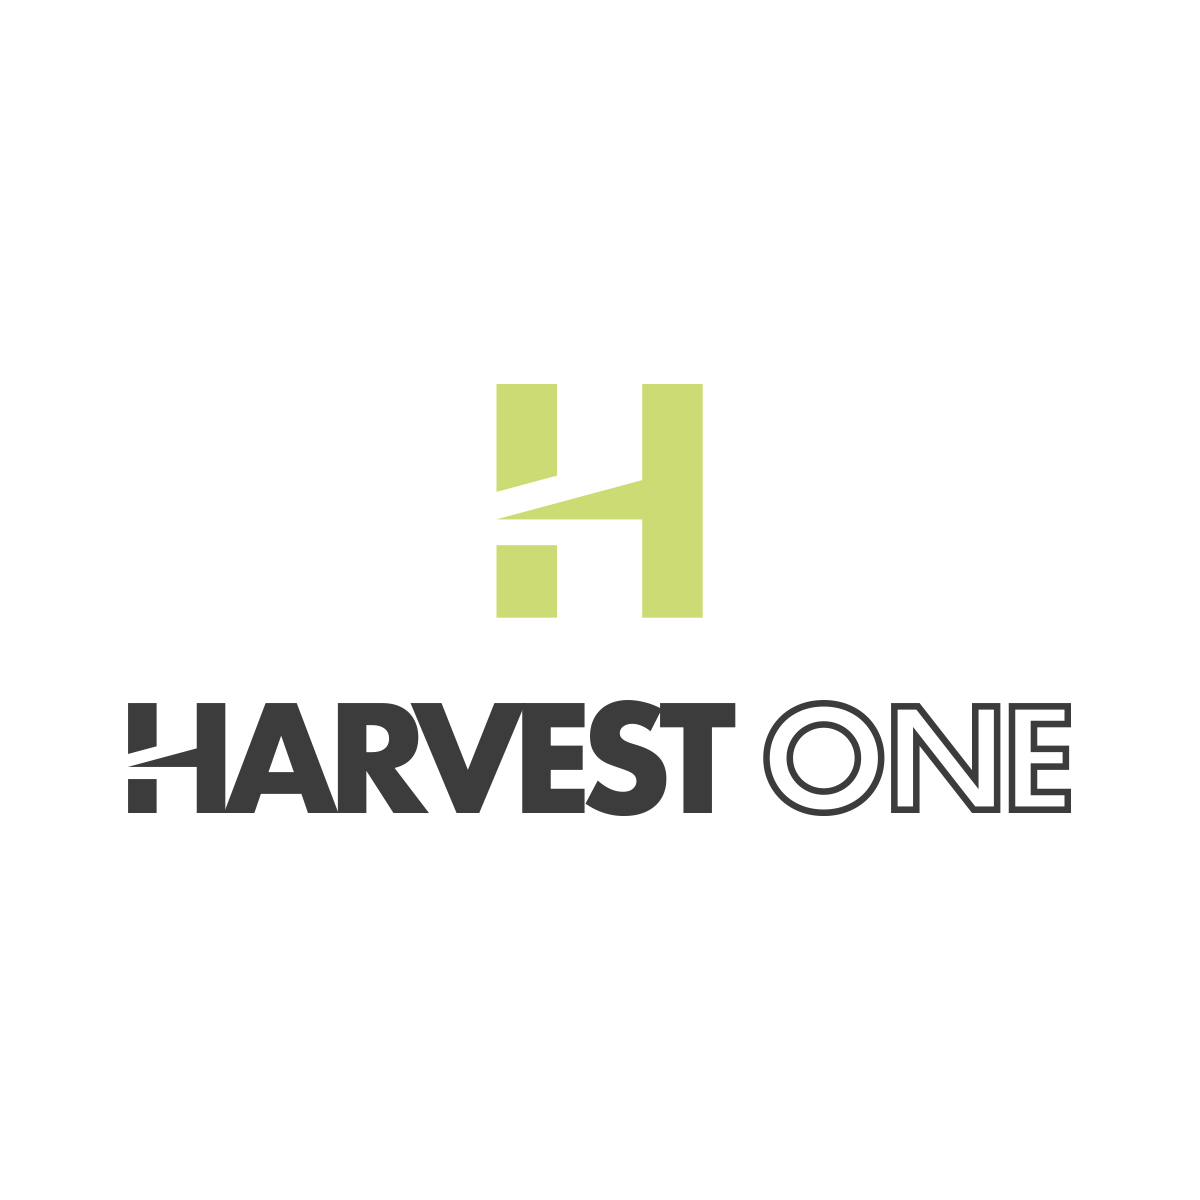 Harvest One Announces Appointment of Chief Commercial Officer